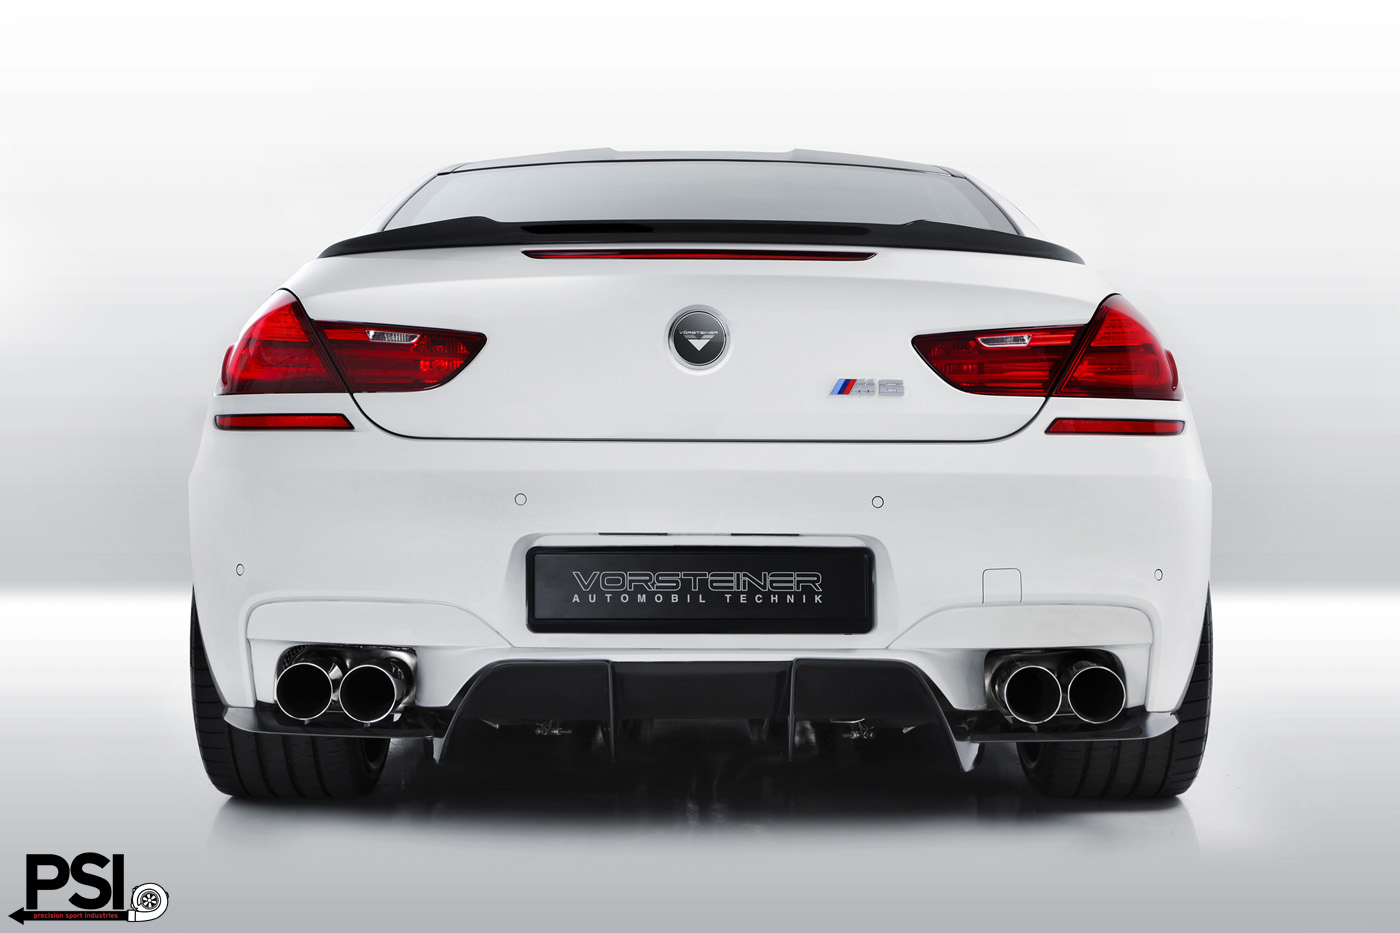 Vorsteiner F12 F13 Gran coupe M6 program by PSI